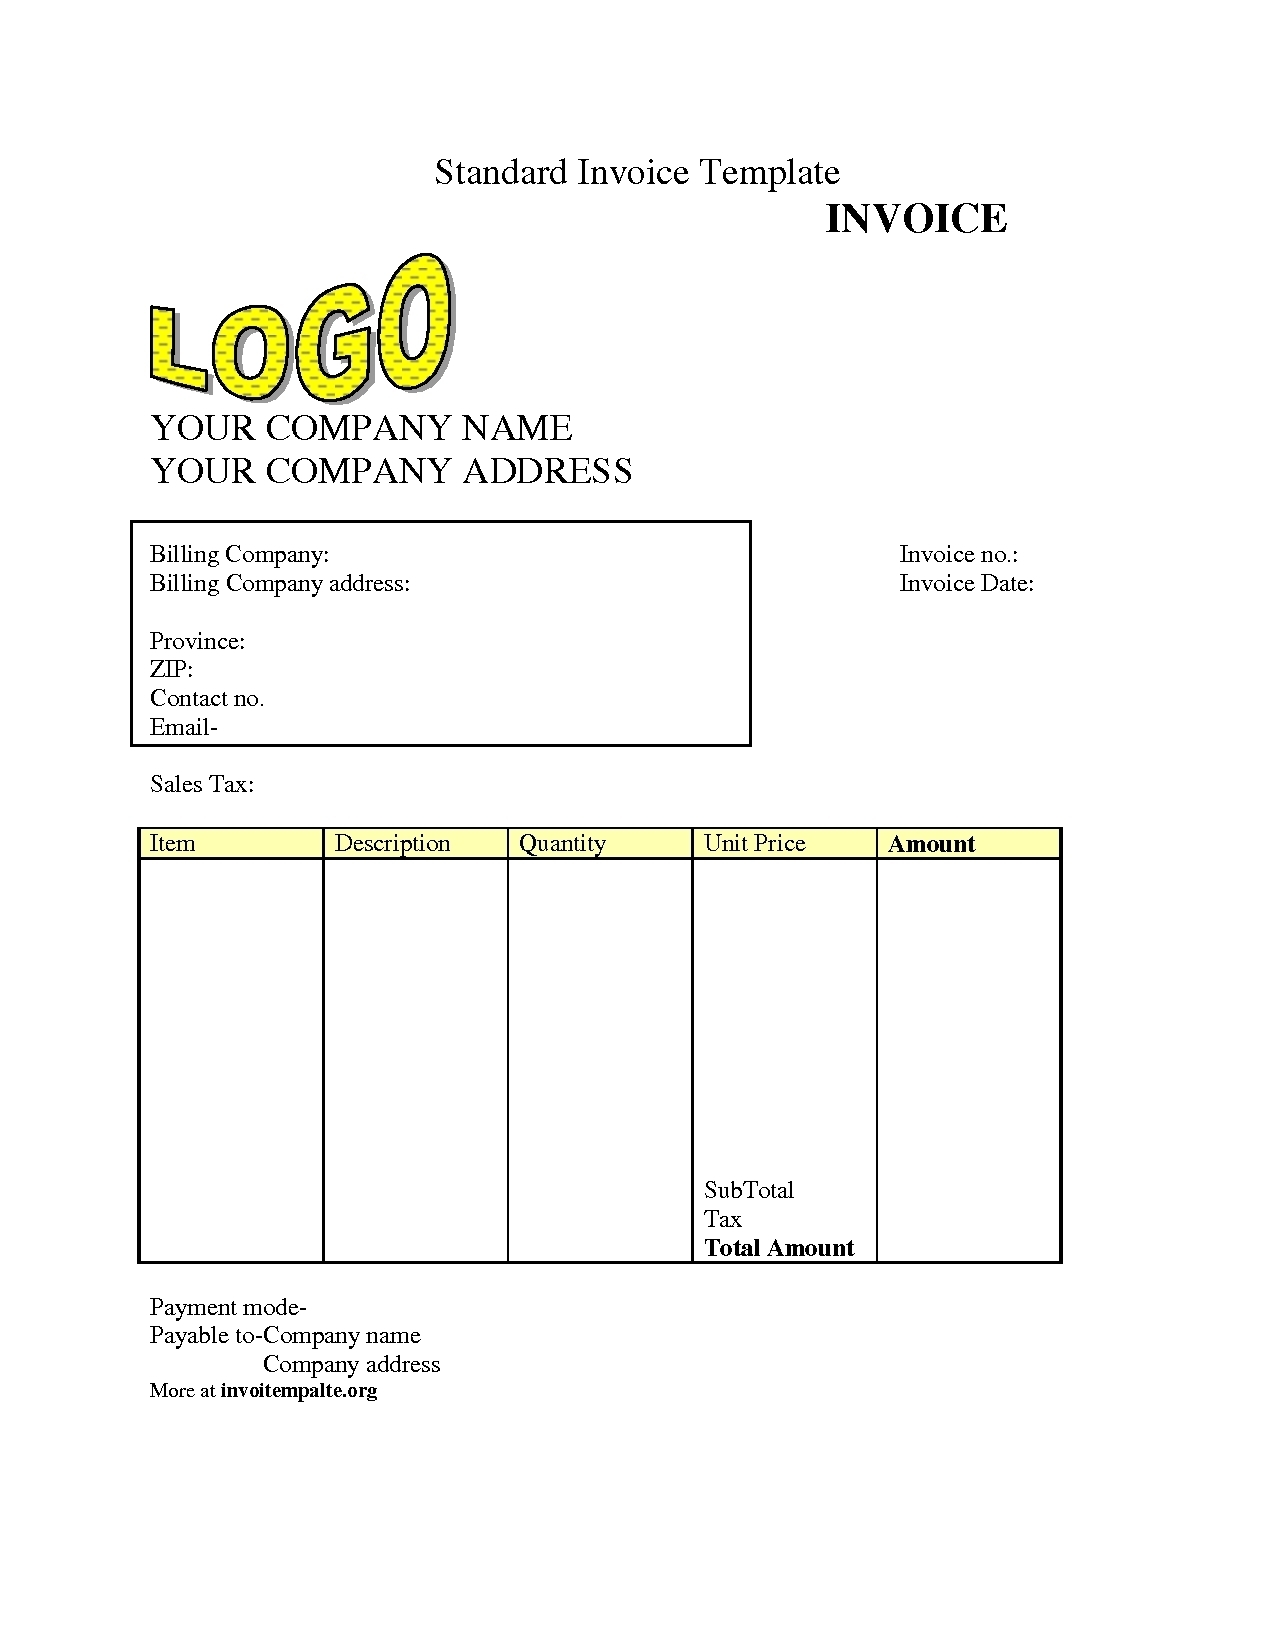 download invoice template free design invoice template download invoice template free